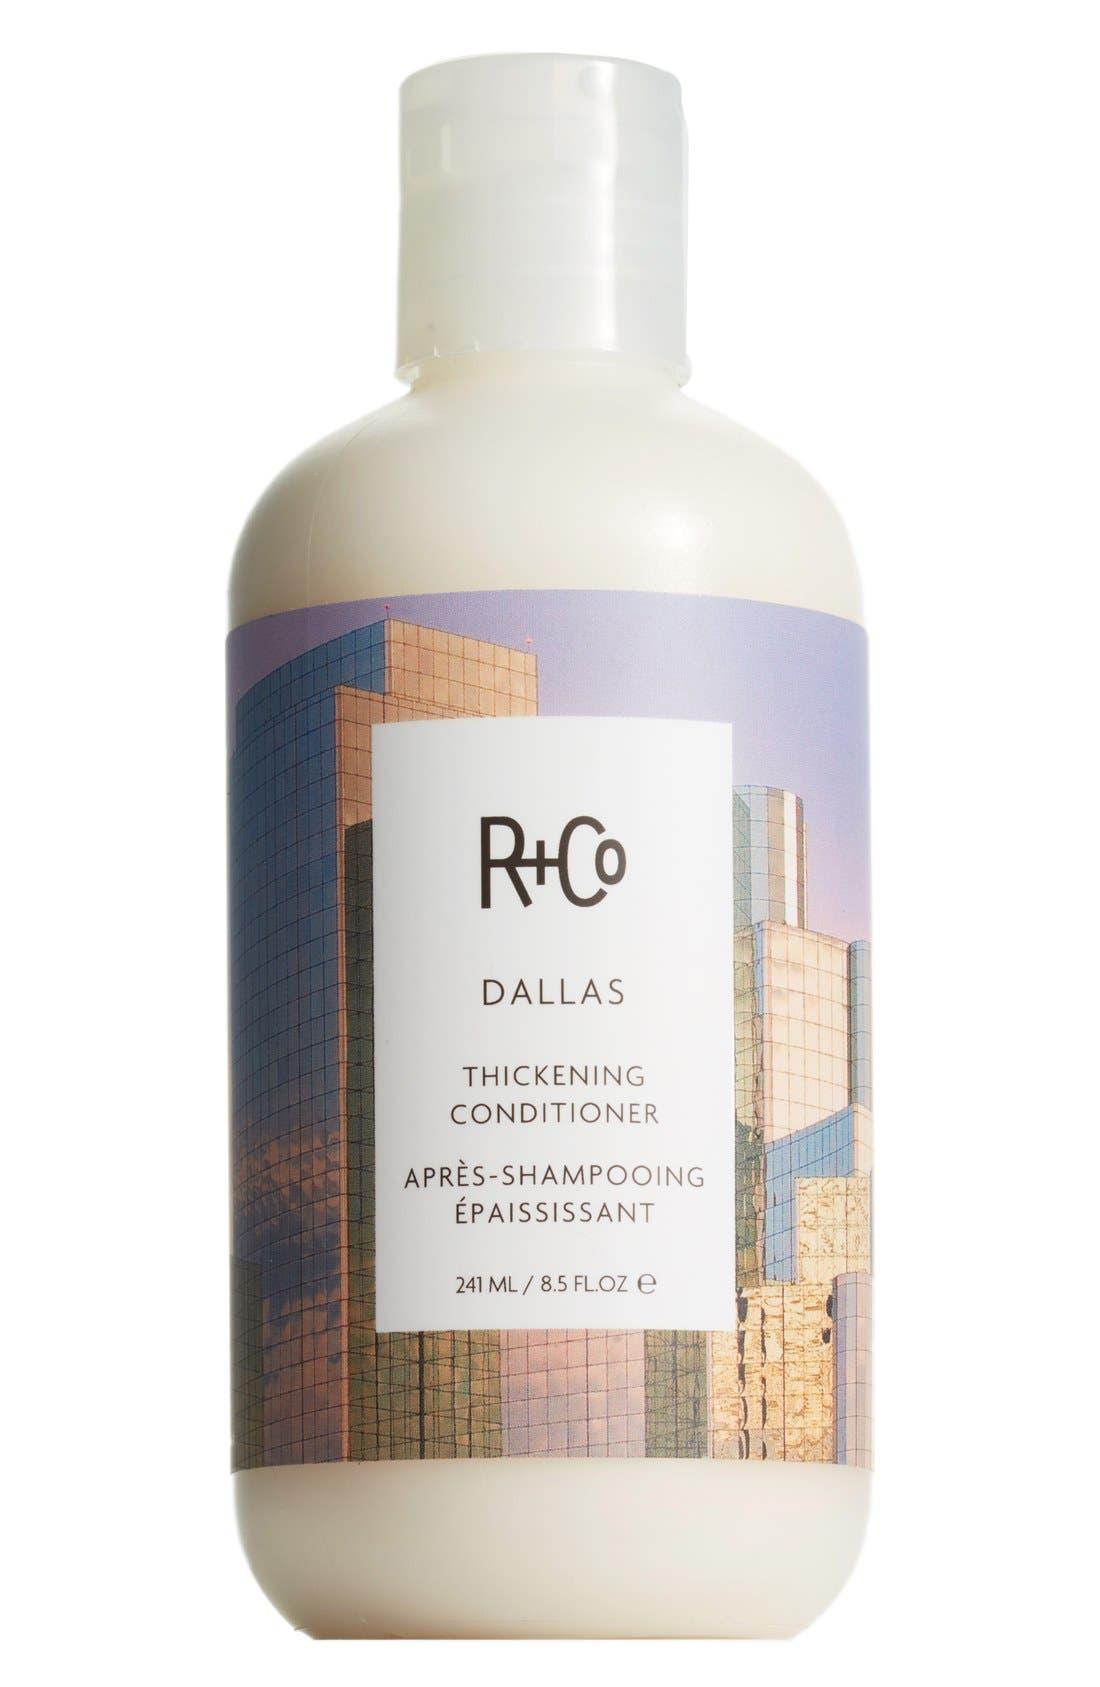 Space.NK.apothecary R+Co Dallas Thickening Conditioner